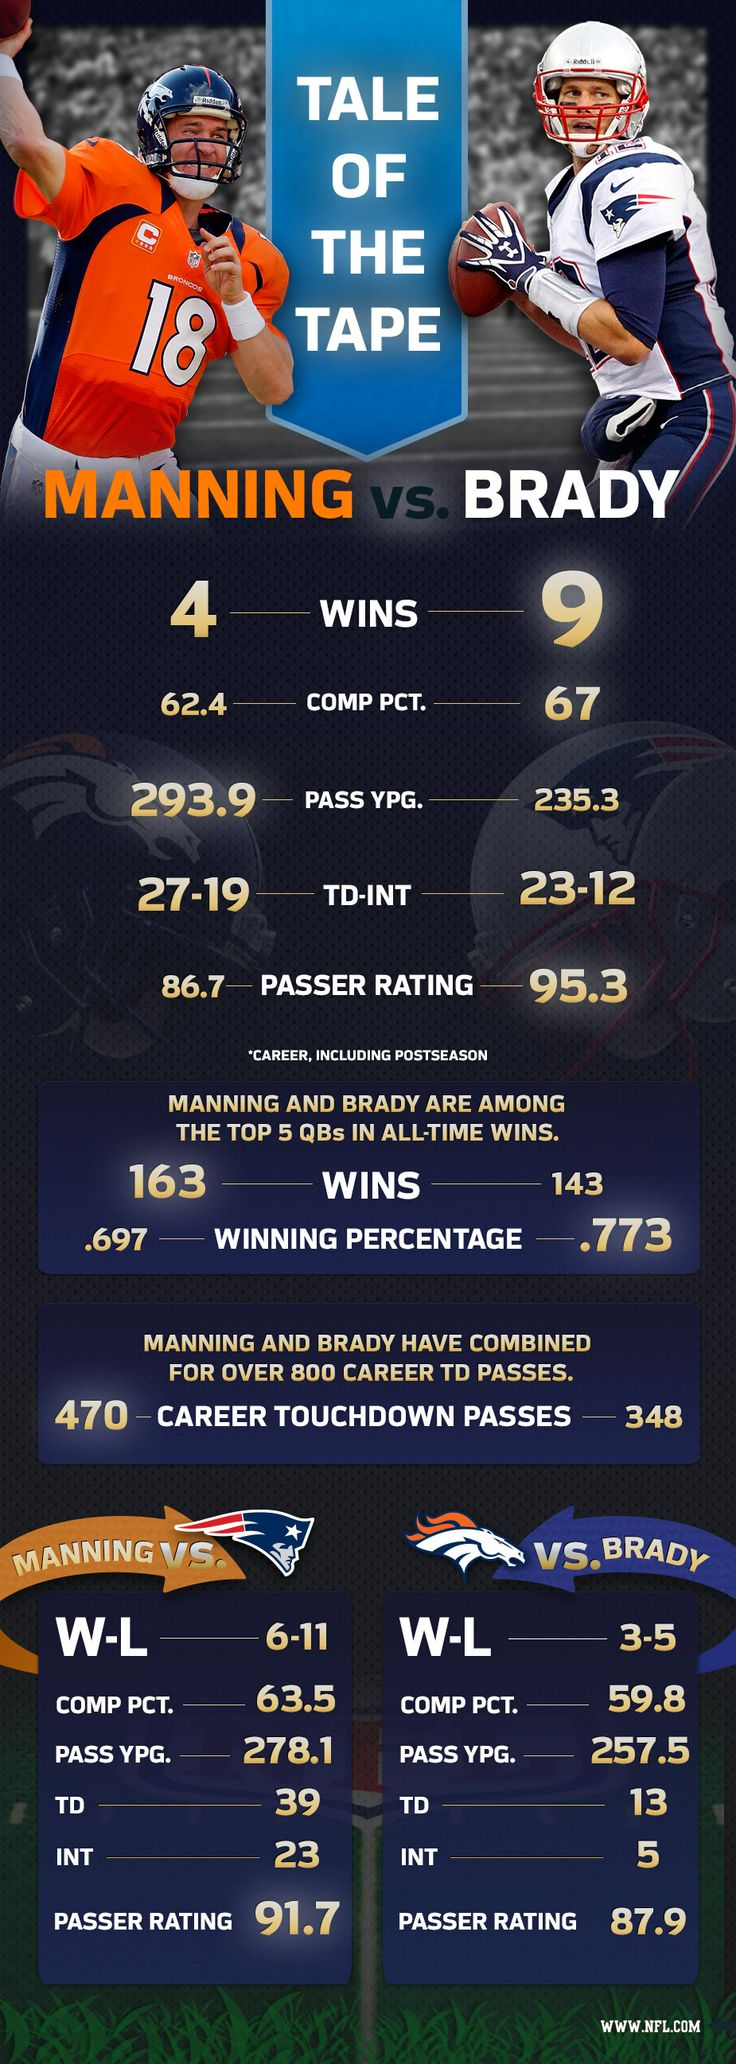 "We have our tickets! Tale of the Tape: Peyton Manning vs. Tom Brady - NFL.com ""Despite Tom Brady's great record of 9-4 against Peyton Manning, he is 3-5 in his career vs. the Denver Broncos, making them the only team in the NFL to have a winning record against Brady."""